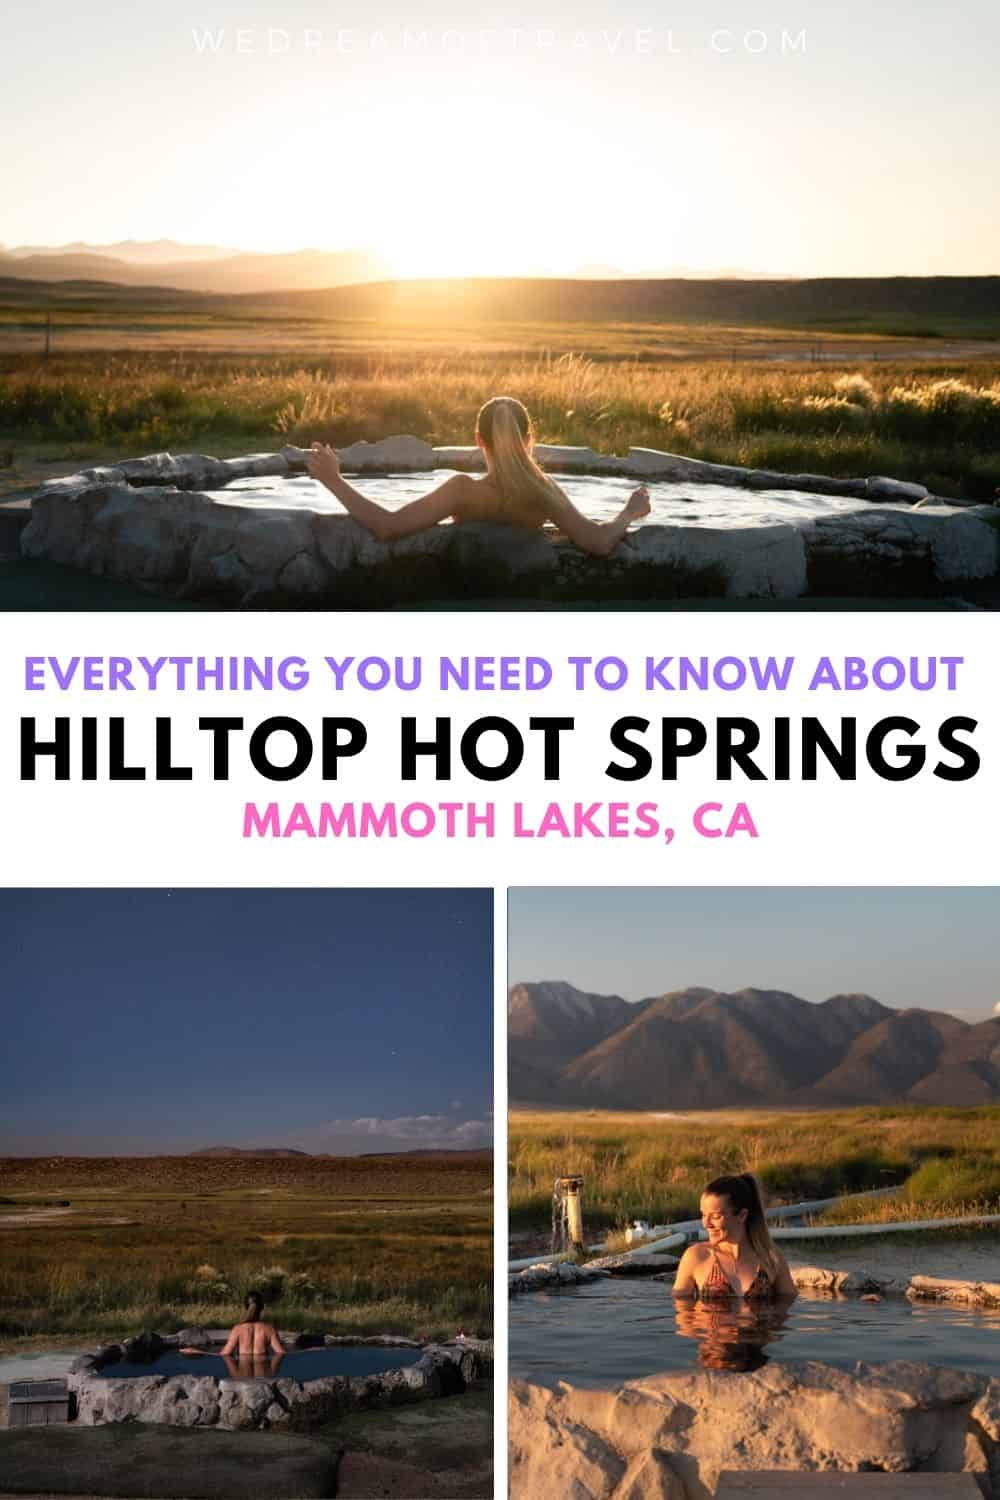 Find out everything you need to know about Hilltop Hot Springs, also known as Pulkey's Pool.  Located just outside Mammoth Lakes, this natural hot spring provides the perfect spot to relax and watch the sunset over the Sierra Mountains.